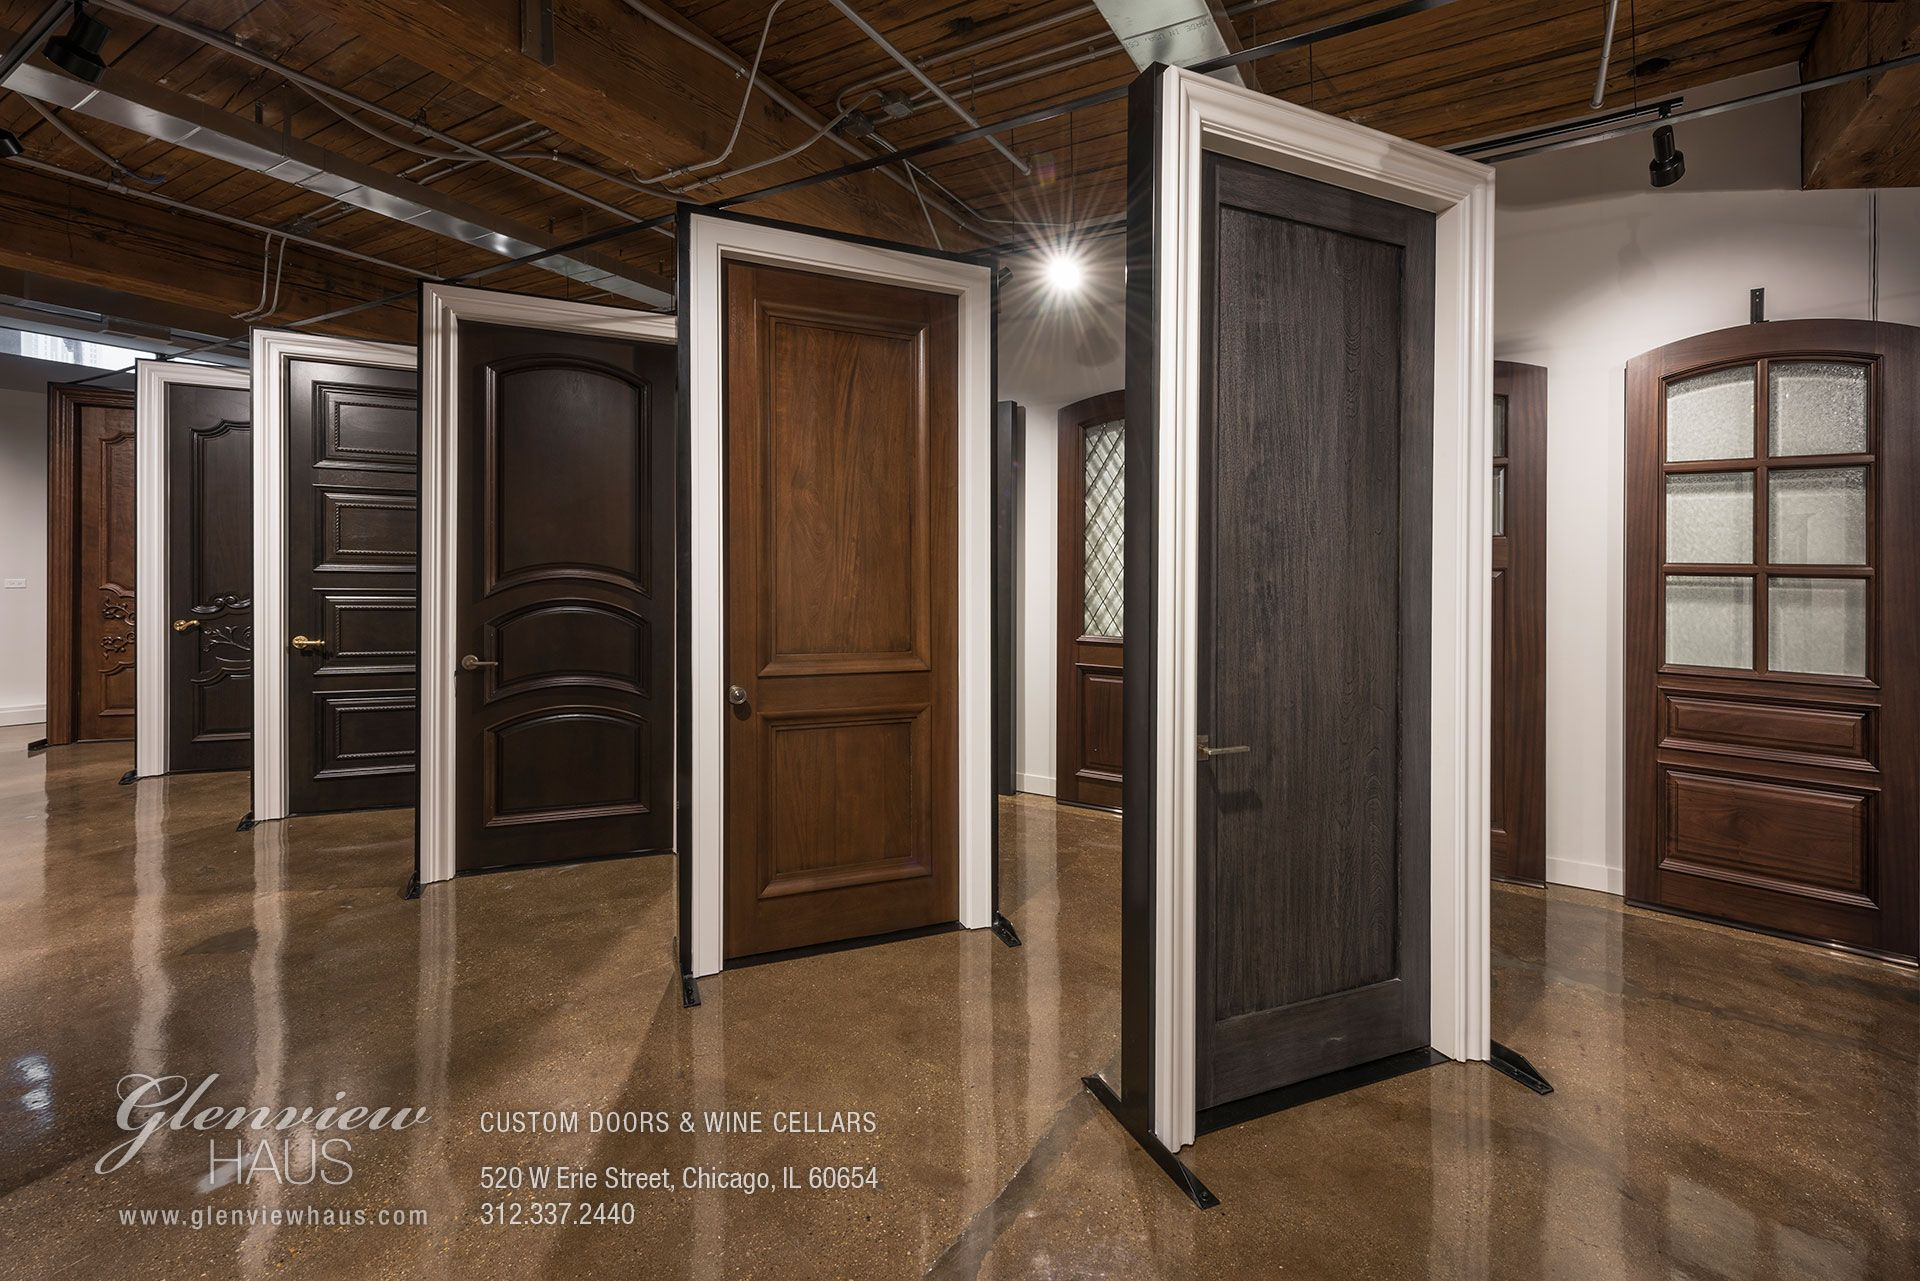 Glenview Haus Custom Doors And Wine Cellars Showroom Showroom Interior Design Custom Door Upvc Stable Doors